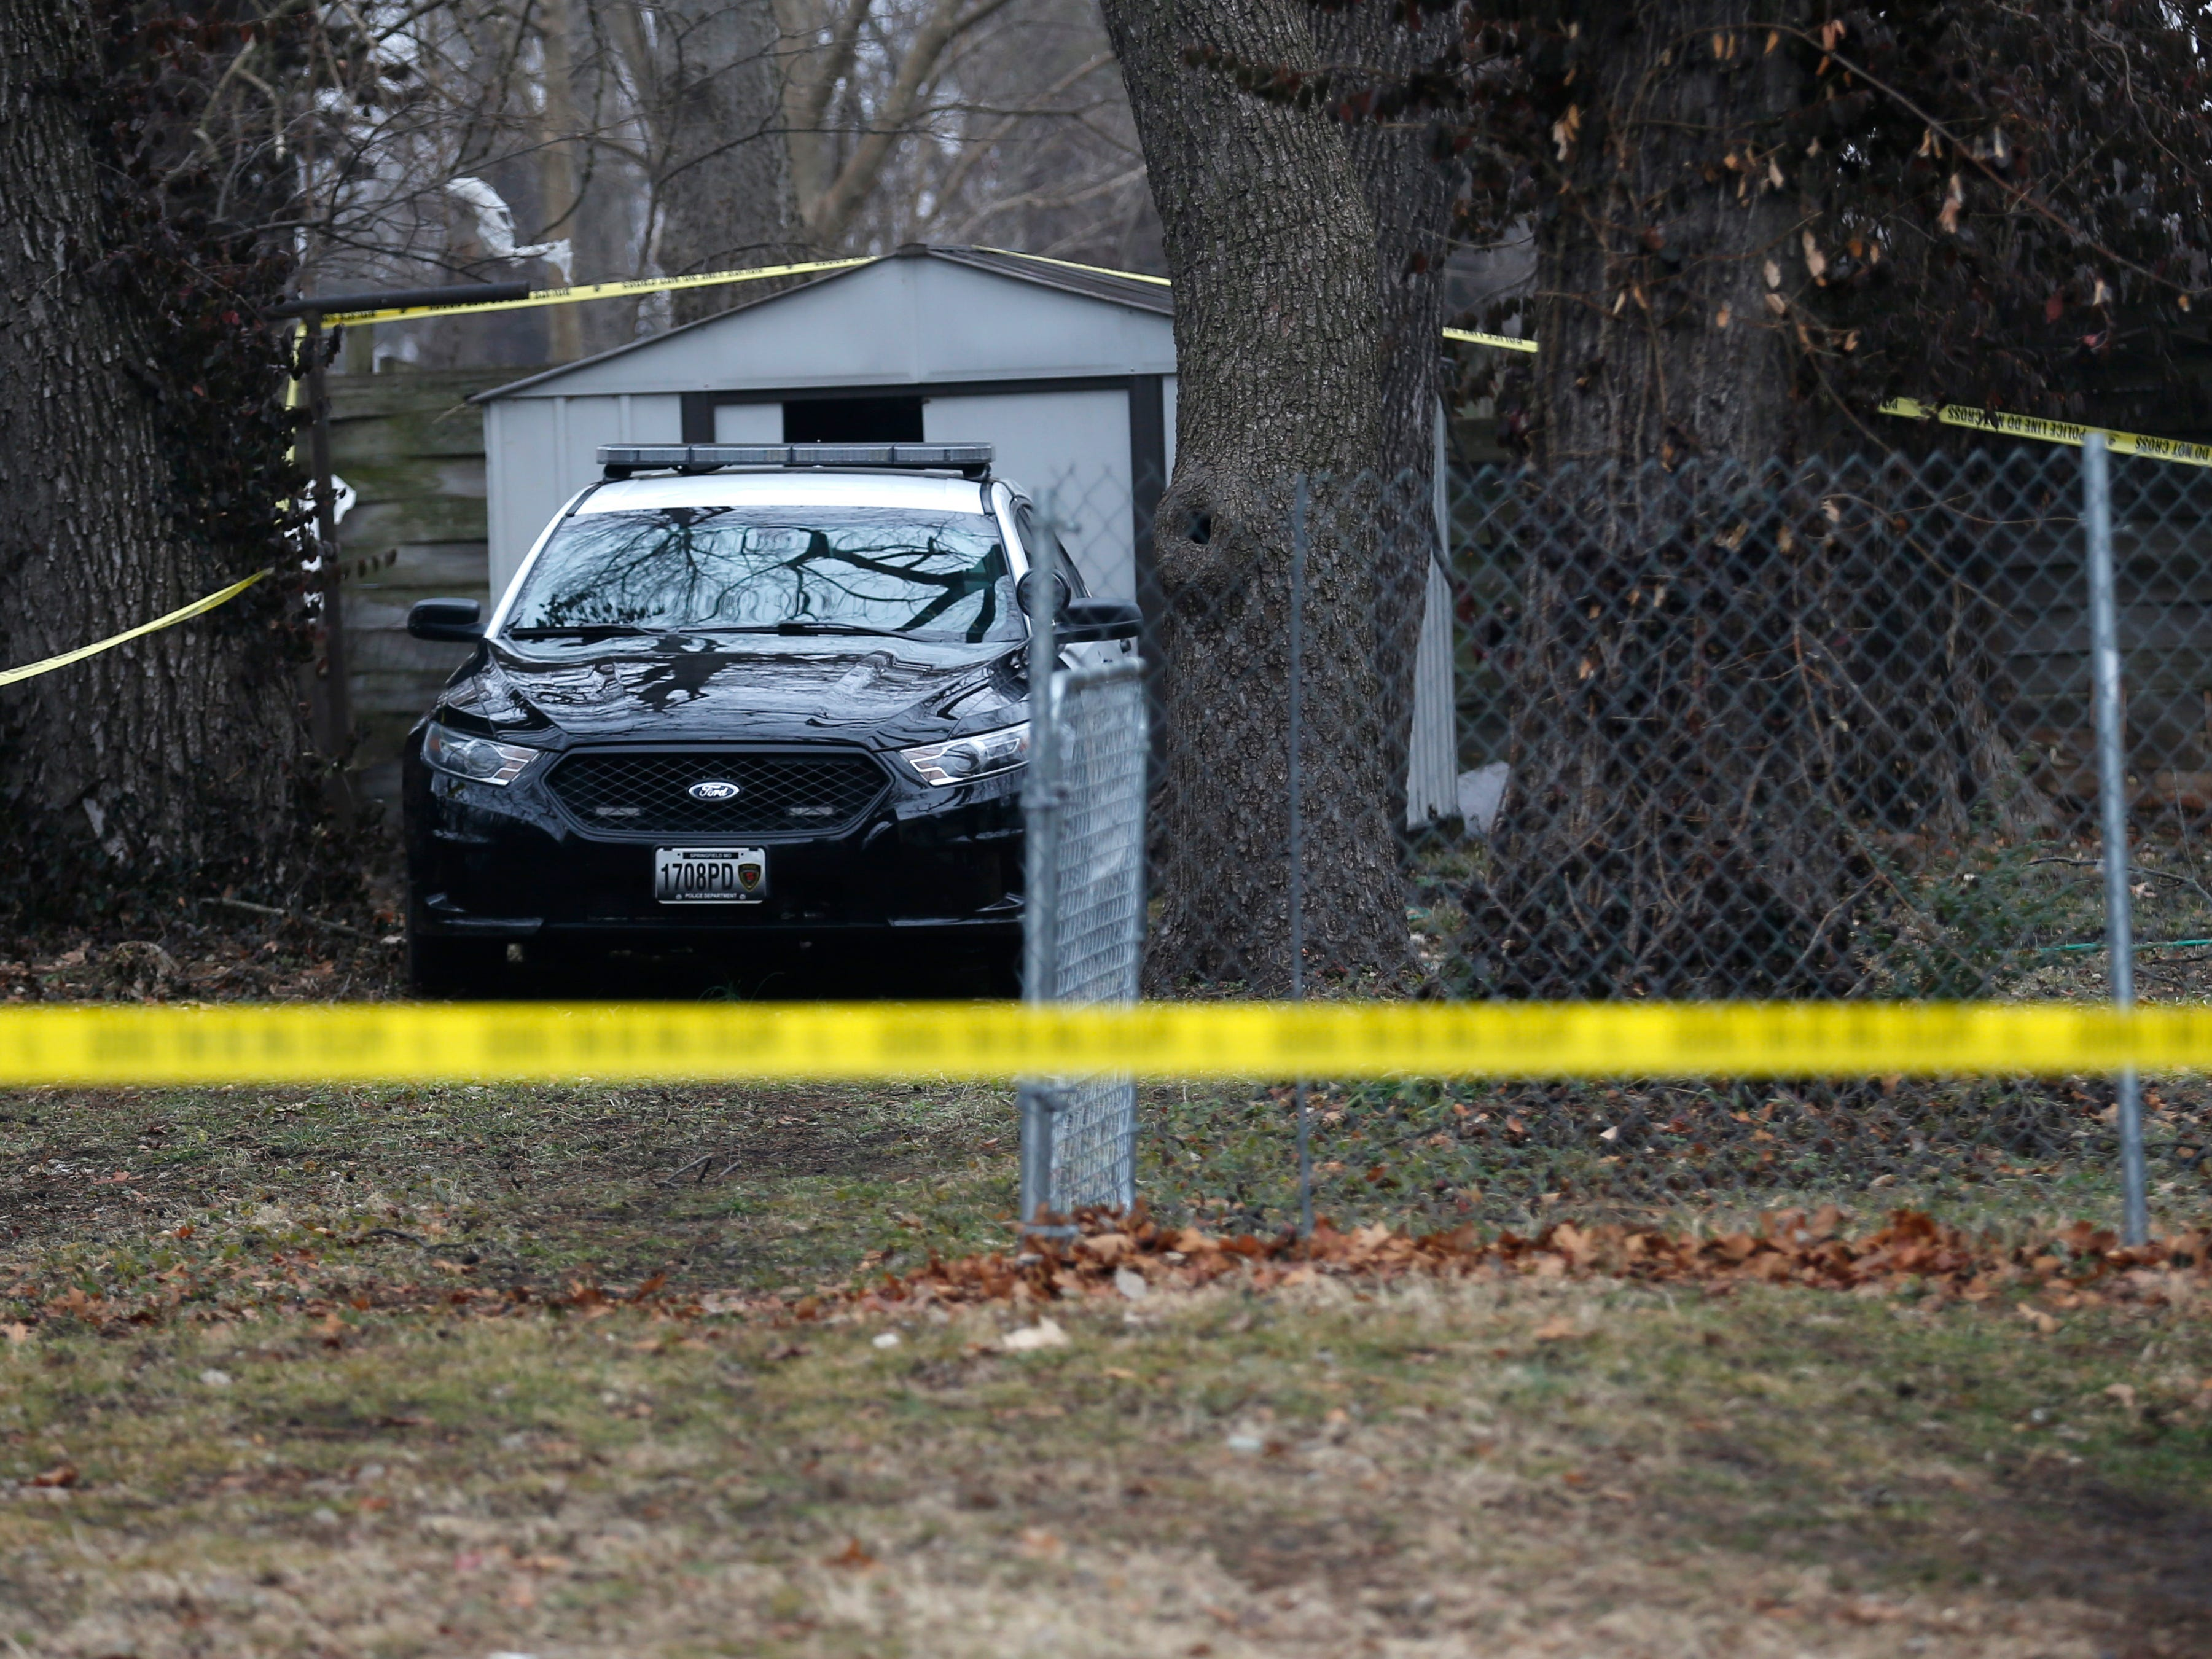 Springfield police are investigating a homicide at a home in the 900 block of West Locust Street on Tuesday, January 15, 2019.